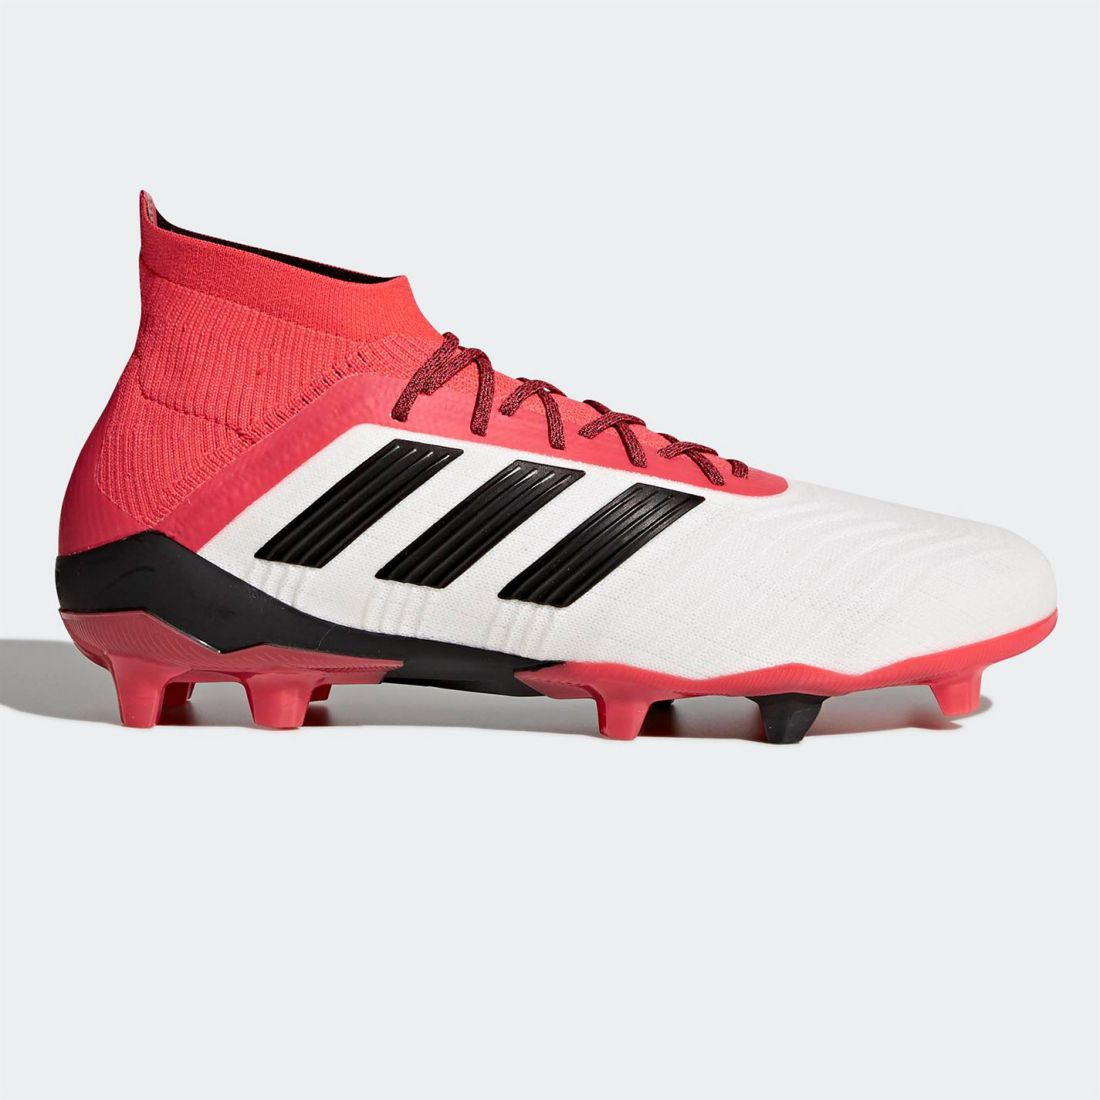 Adidas Mens Predator 18.1 FG Football Boots Firm Ground Lace Up Lightweight